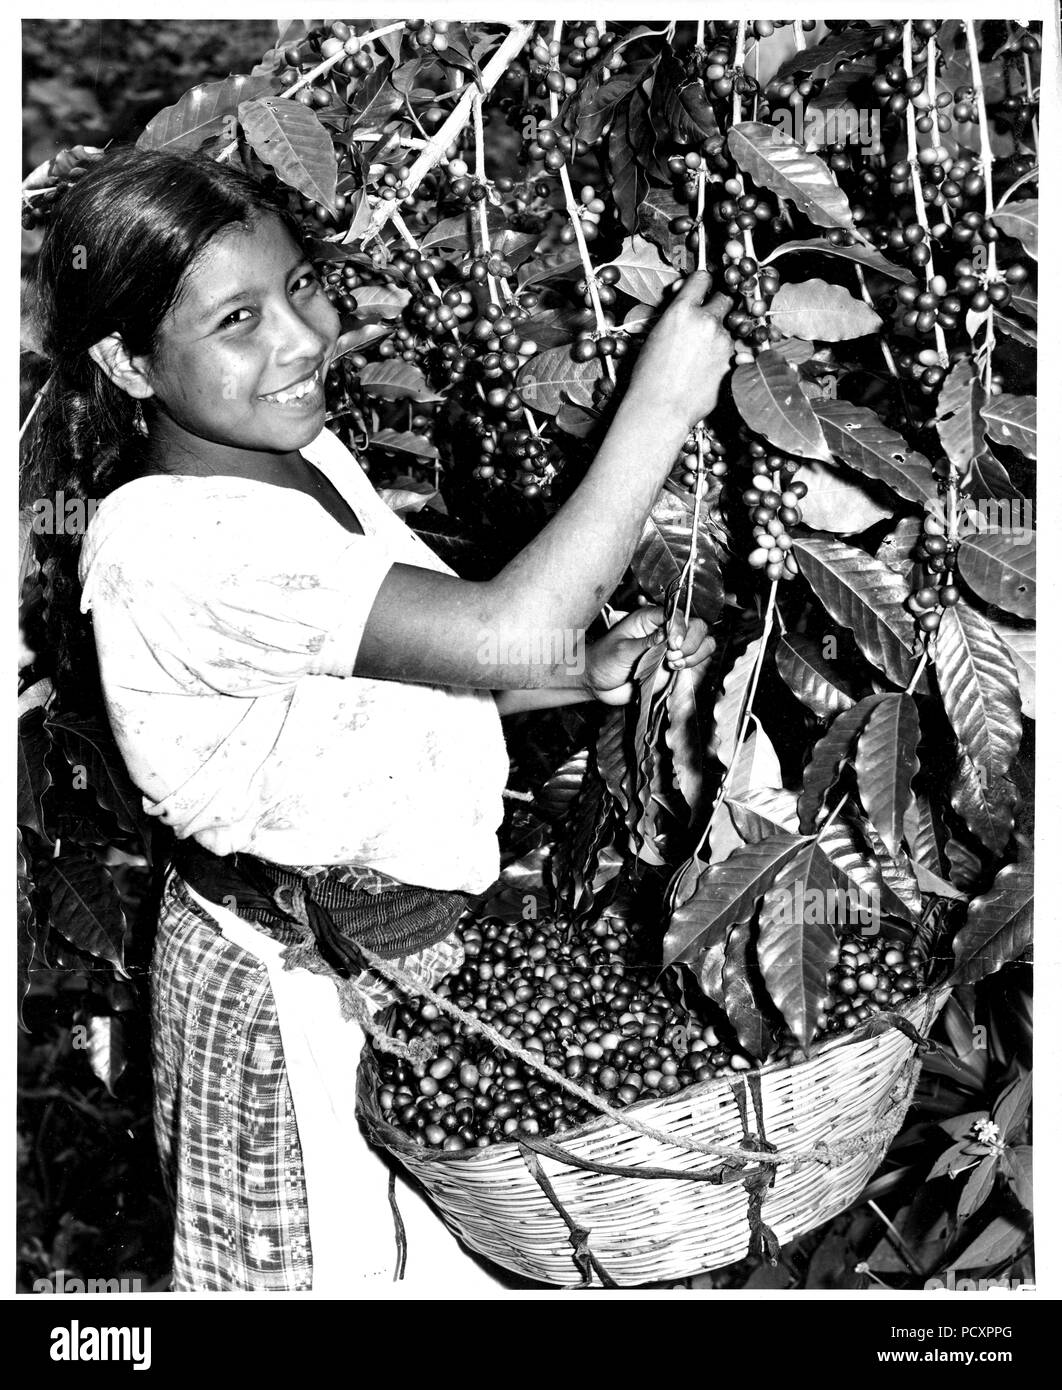 Coffee harvest. The pickers select the ripe red cherries leaving the green, immature fruit on the tree for later harvest. Finca Moca, Guatelon, Guatemala. - Stock Image